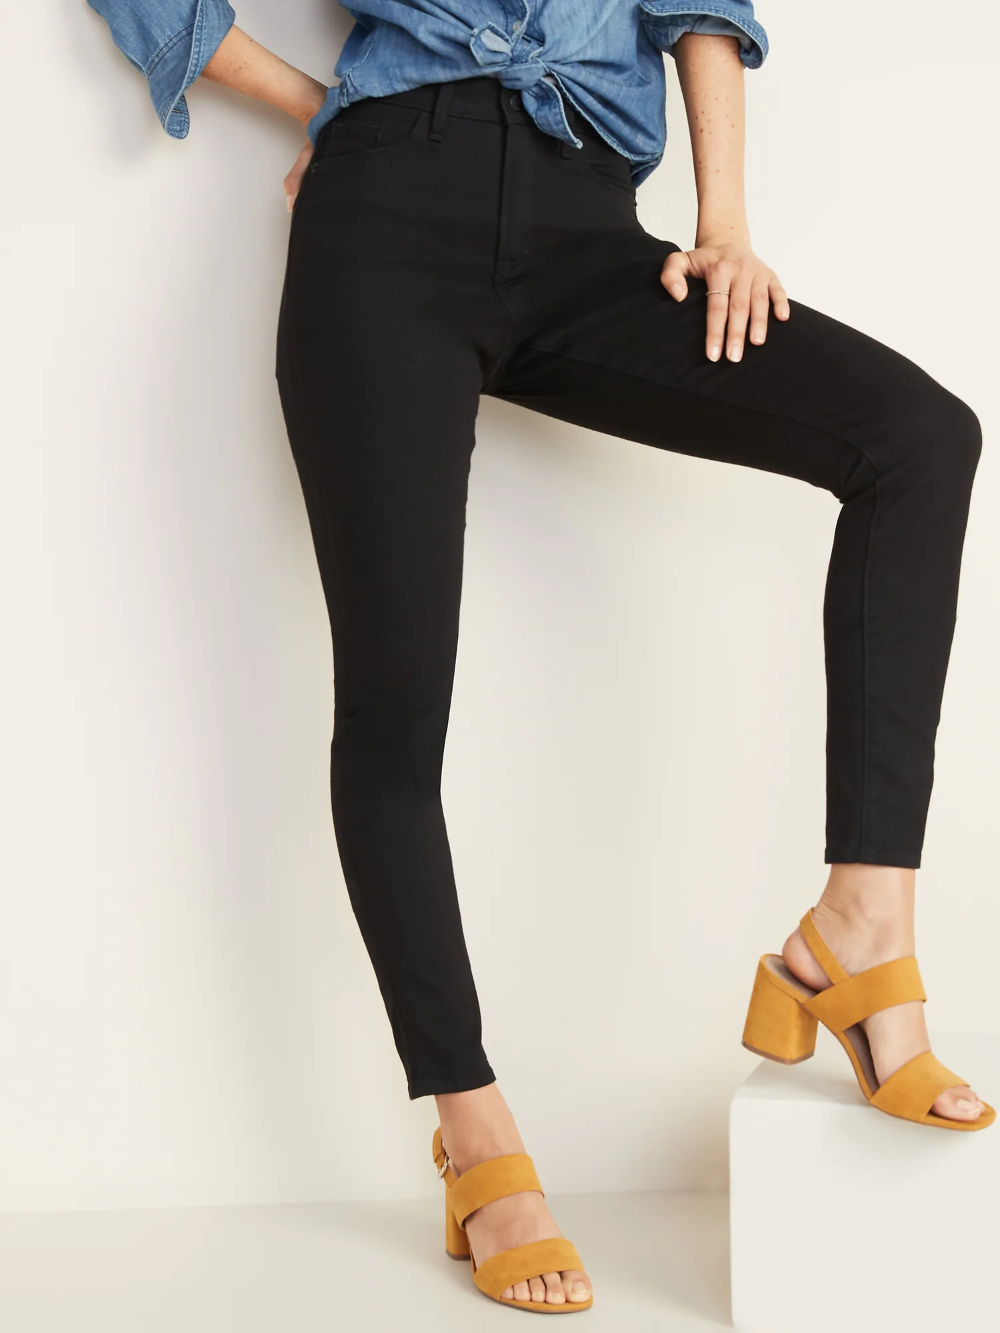 HighWaisted Pop Icon Skinny Jeans For Women Old Navy in